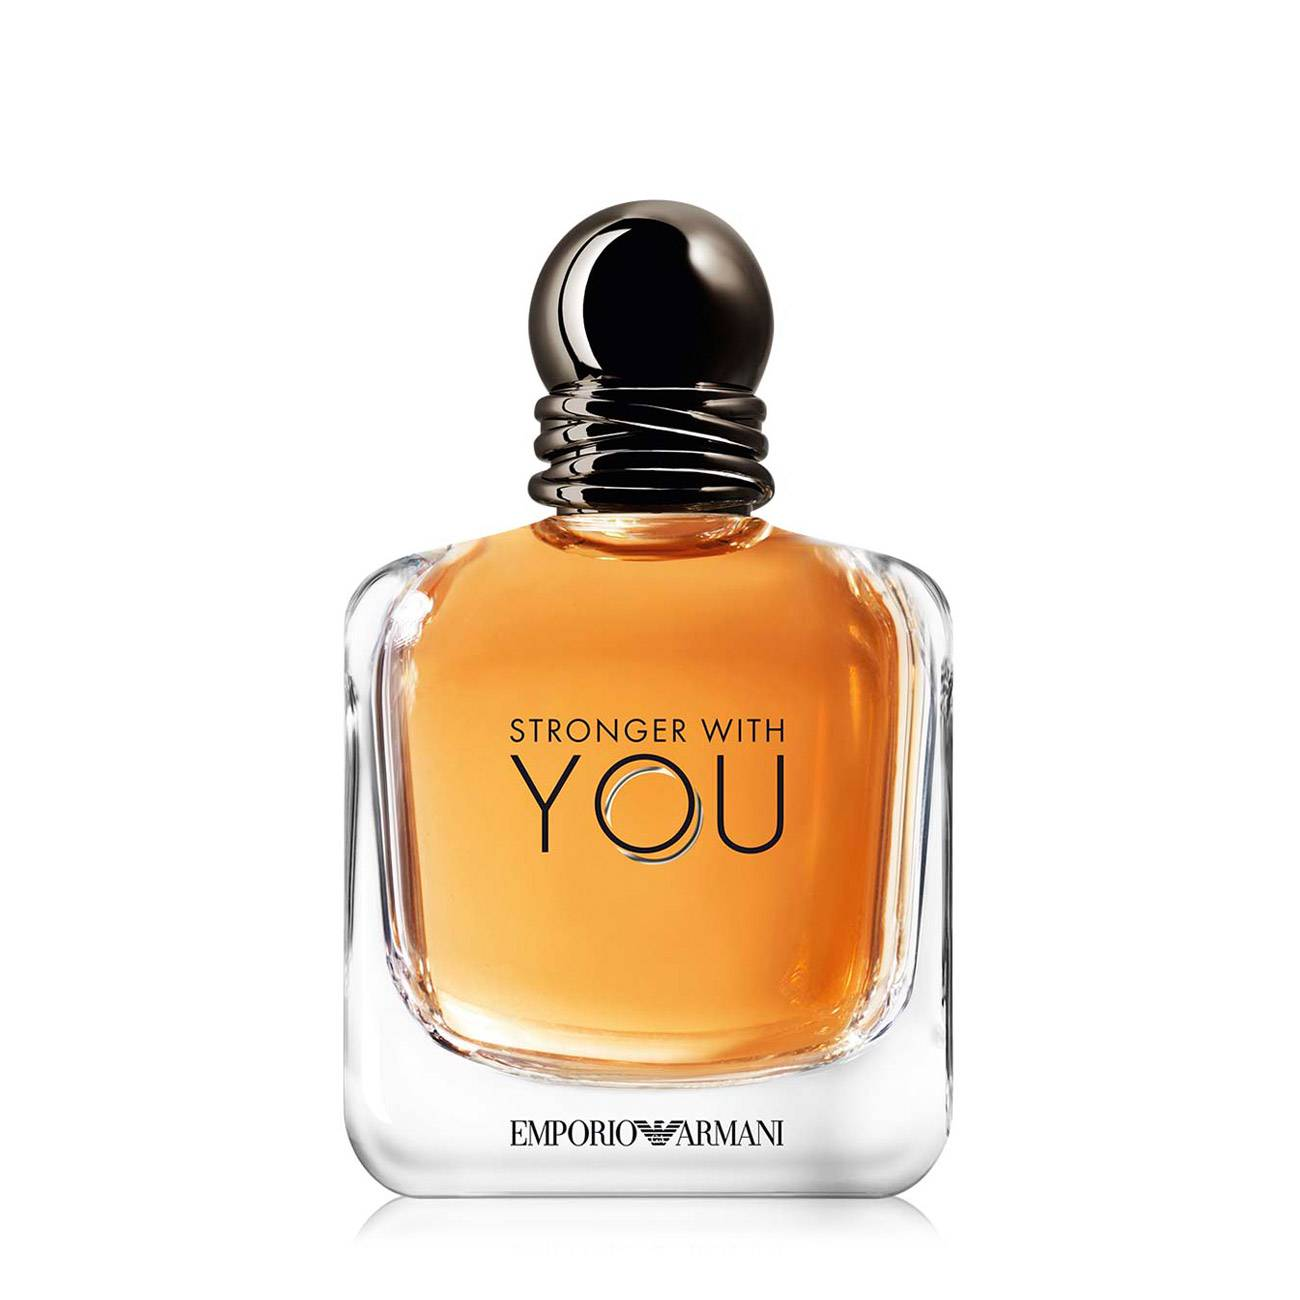 STRONGER WITH YOU 100ml poza noua